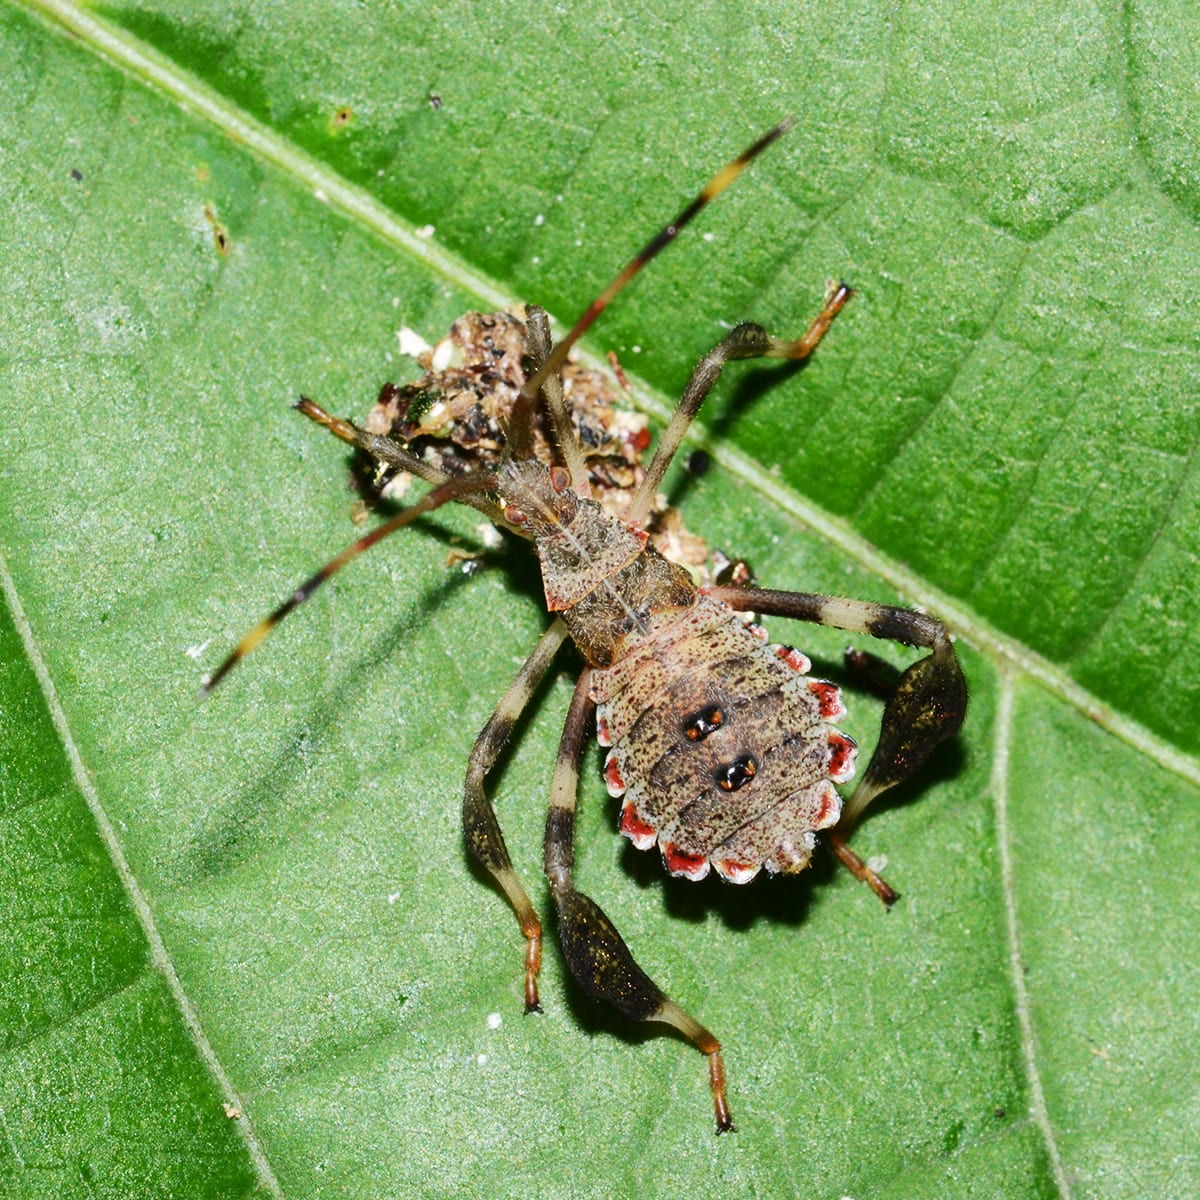 The Leaf Footed Bug